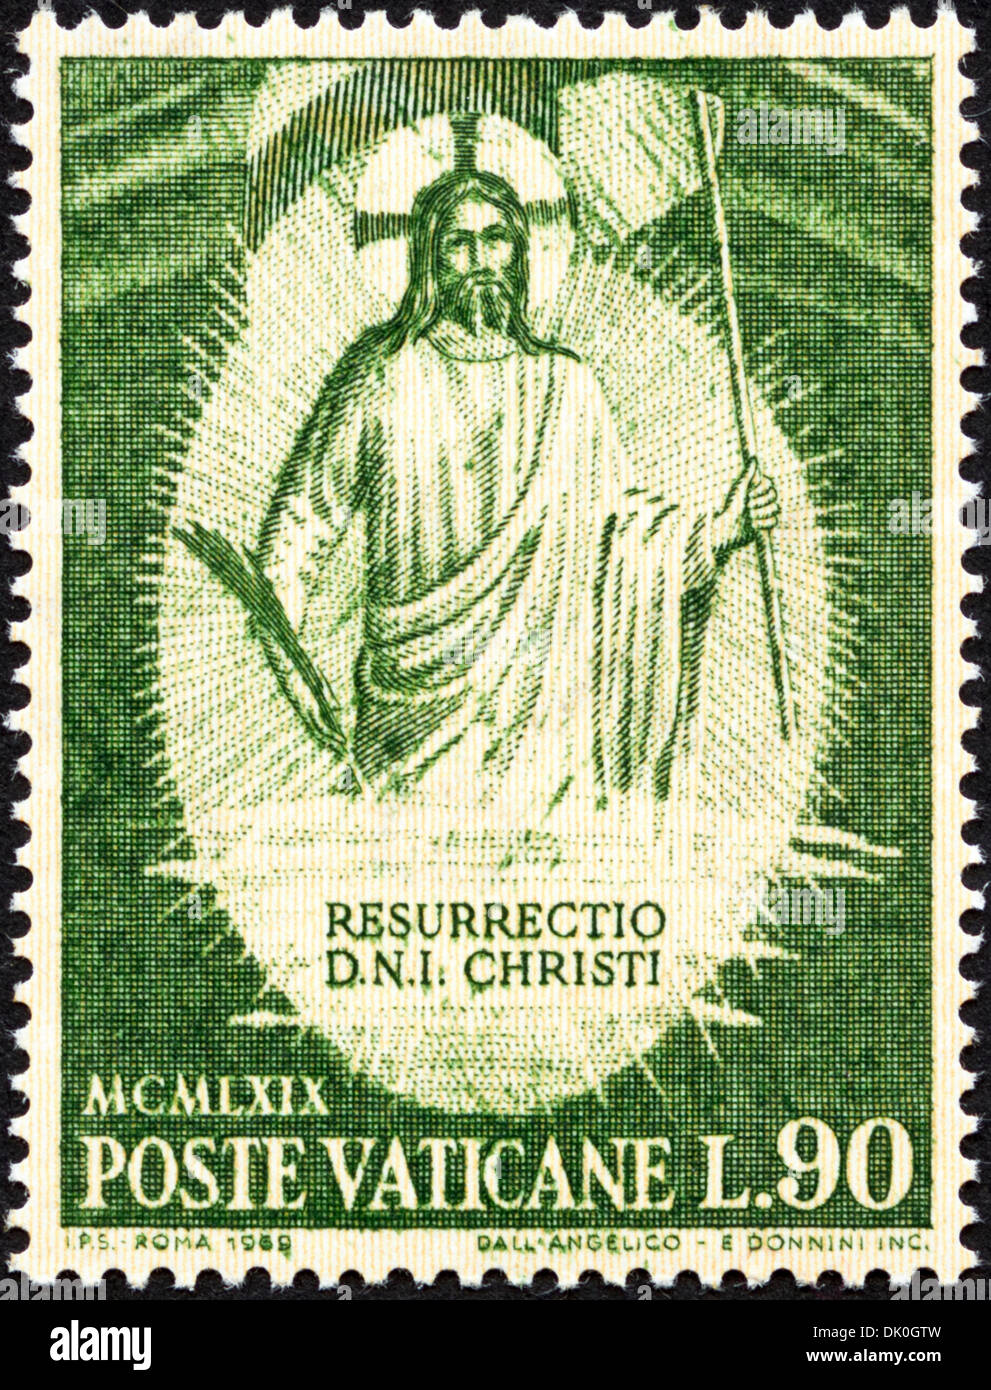 postage stamp Vatican L.90 featuring Resurrection of Christ issued 1969 - Stock Image